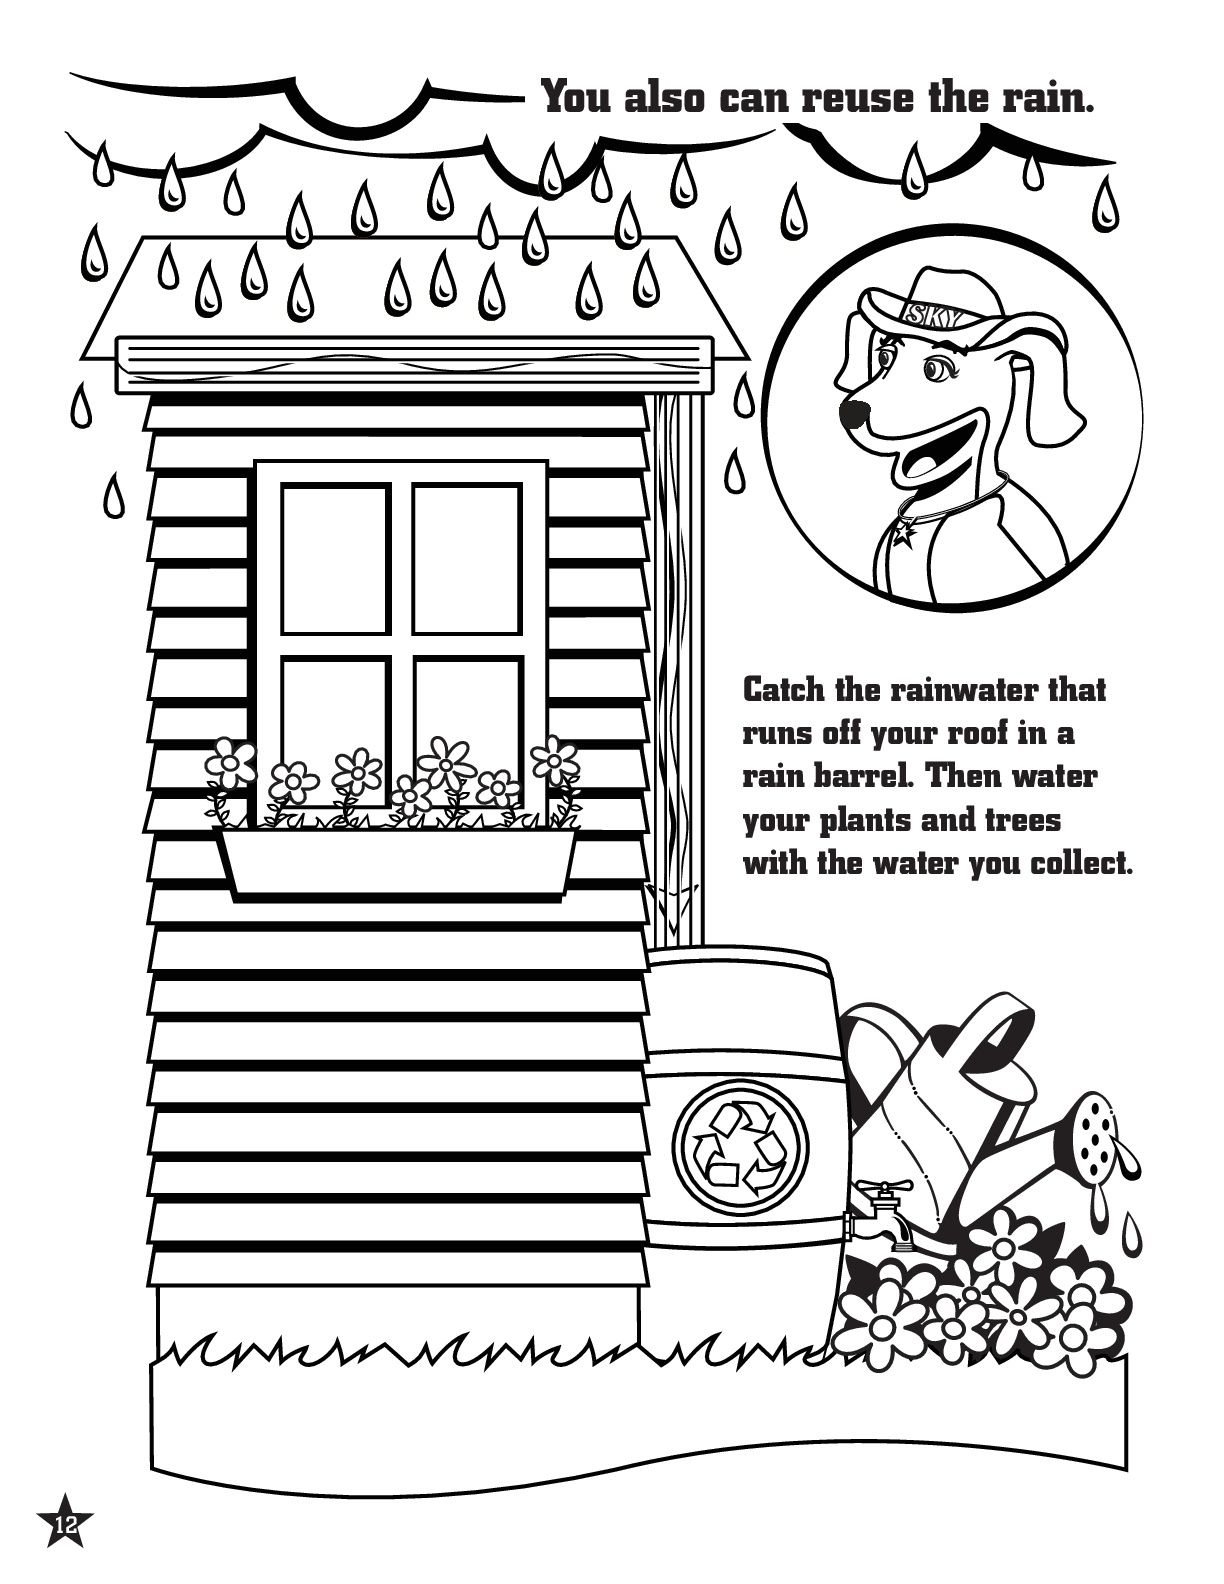 Rainwater Harvesting Coloring Page Rainwaterharvesting Conservewater Rainwater Rainwater Harvesting Water Conservation [ 1584 x 1224 Pixel ]